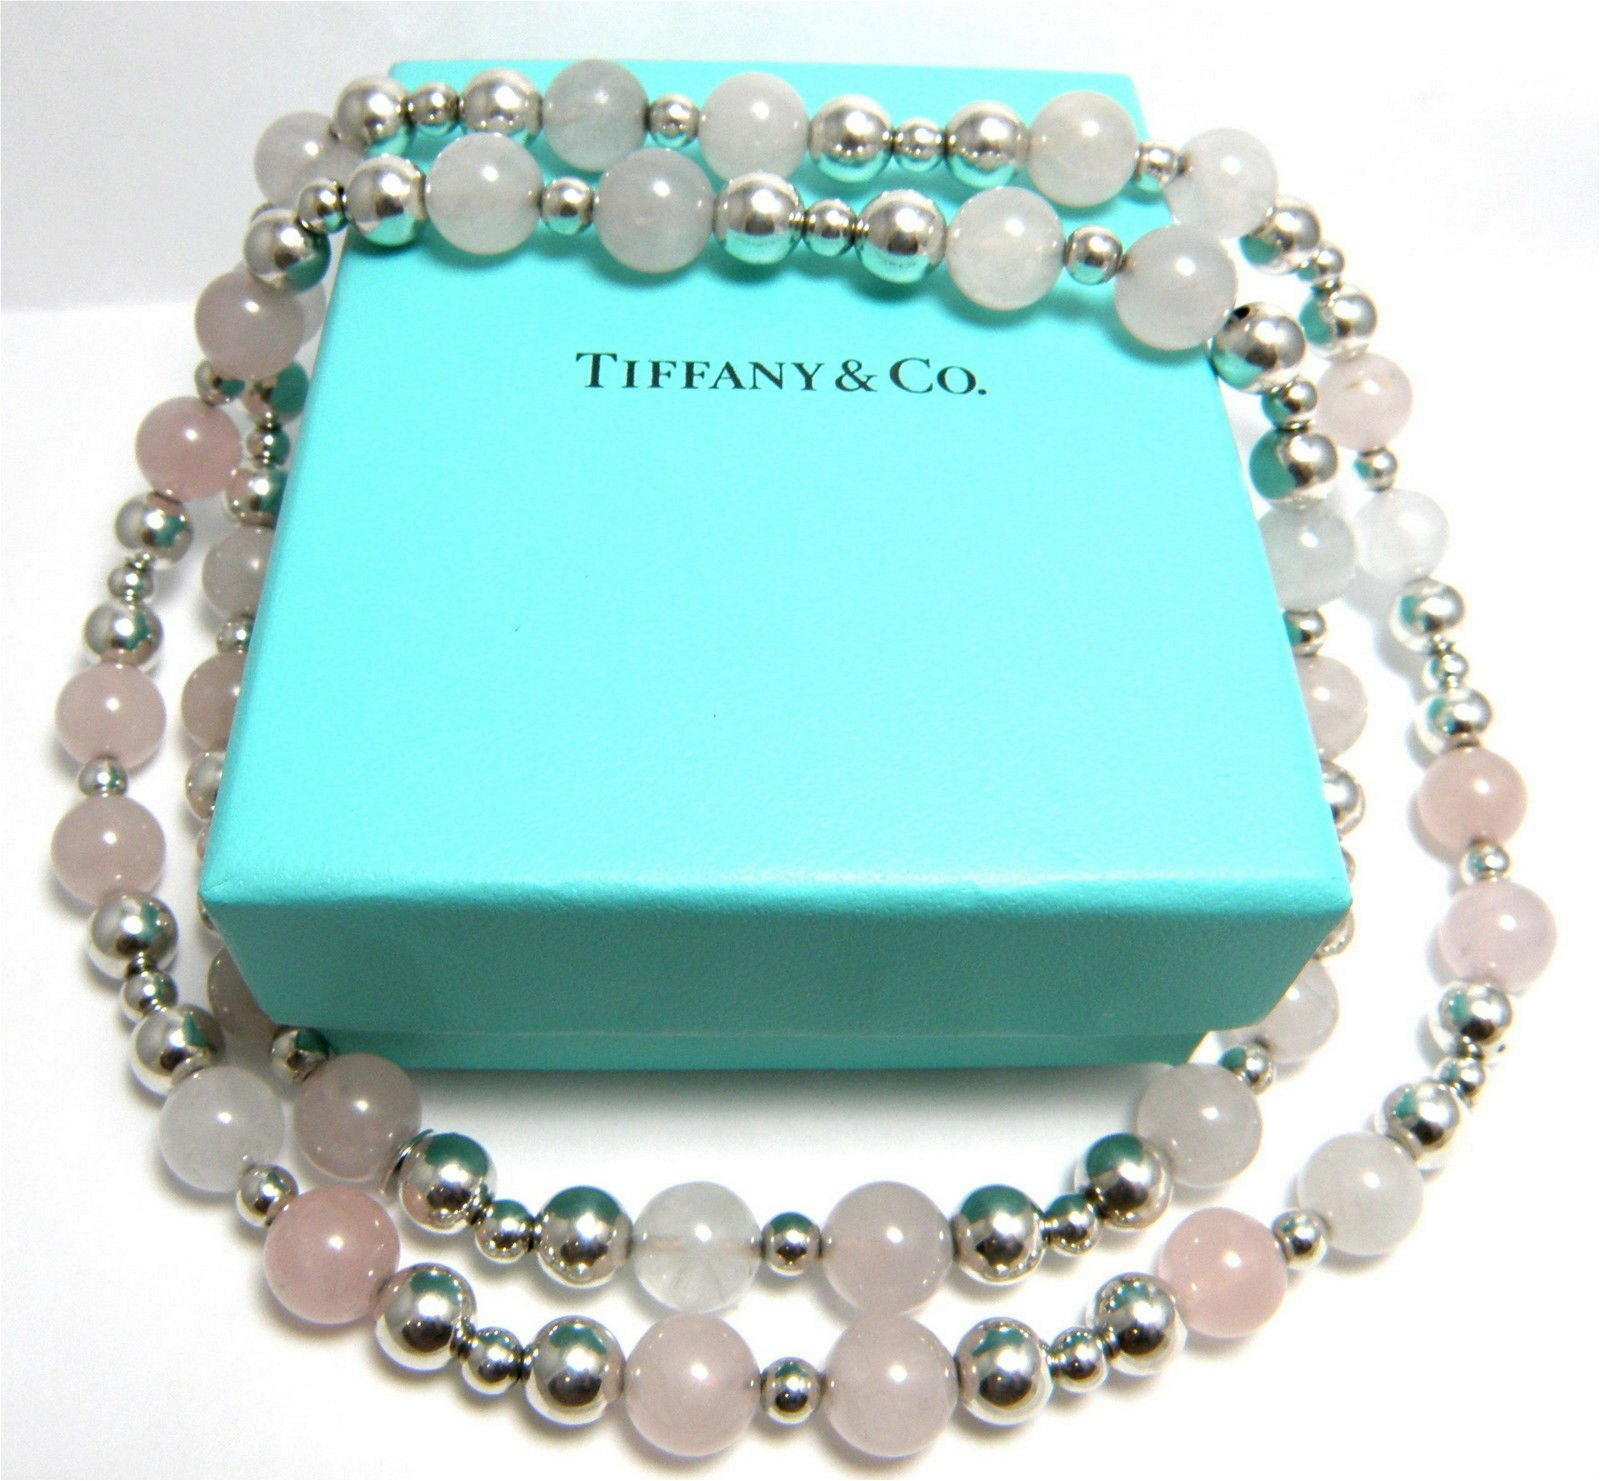 TIFFANY & Co. STERLING SILVER LADIES QUARTZ NECKLACE